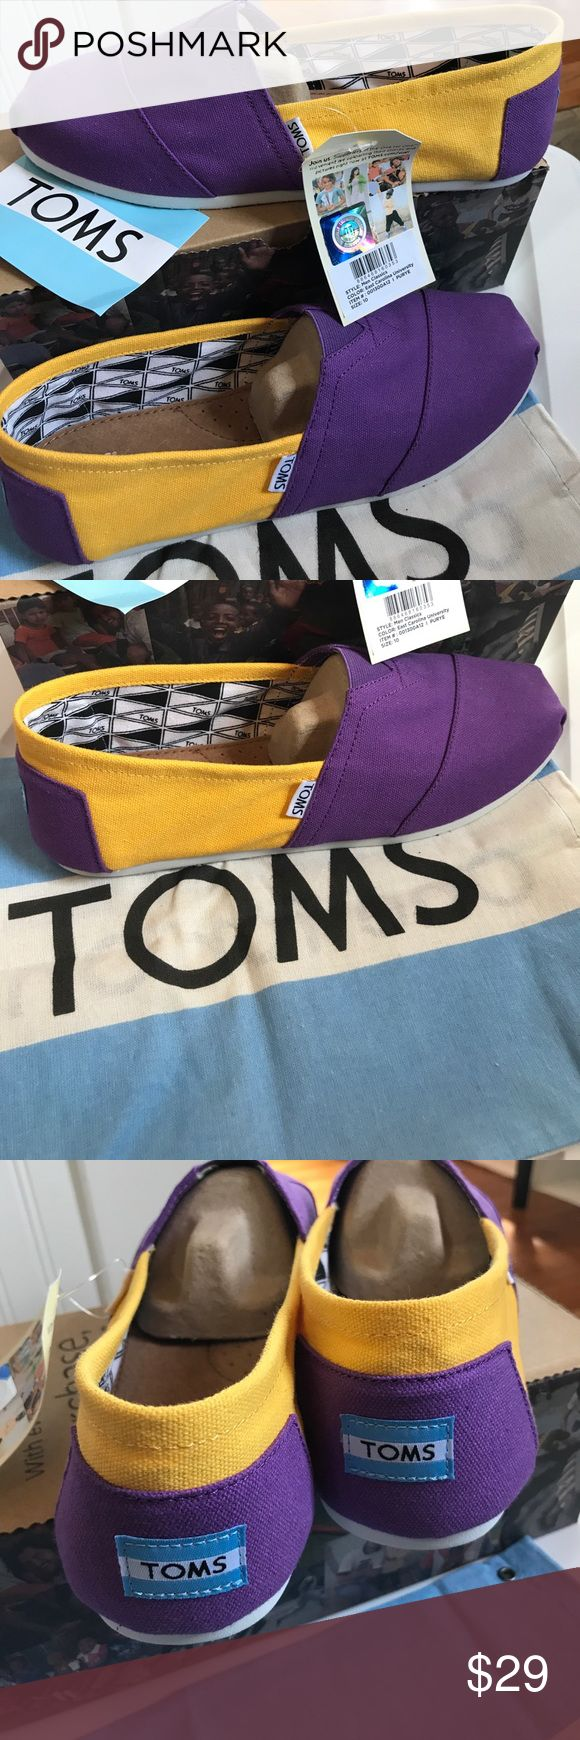 Toms classics canvas University of East Carolina Classics Purple and gold very summery and crisp. New in box 📦  Light weight canvas slipons, the shoe that made TOMS famous! University of East Carolina University or other schools with Purple and gold. TOMS Shoes Loafers & Slip-Ons